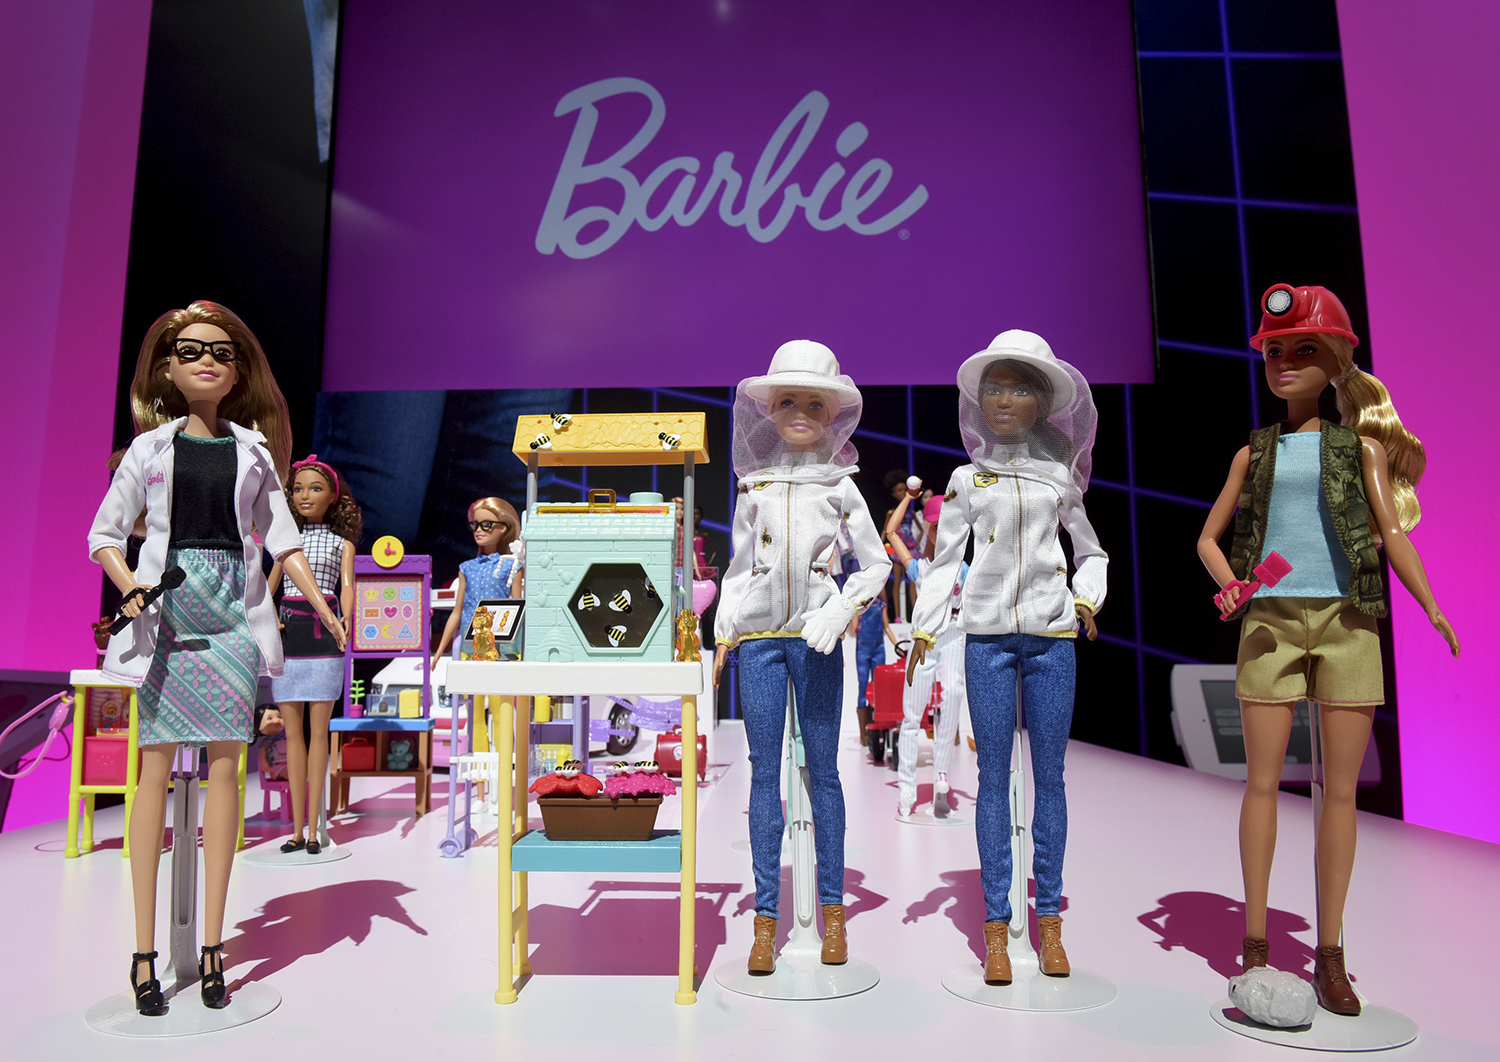 <div class='meta'><div class='origin-logo' data-origin='AP'></div><span class='caption-text' data-credit='Diane Bondareff /AP Images for Mattel'>The new line up of 2018 Barbie Career dolls includes eye doctor, beekeeper and paleontologist, joining the more than 200+ careers Barbie has had since 1959.</span></div>